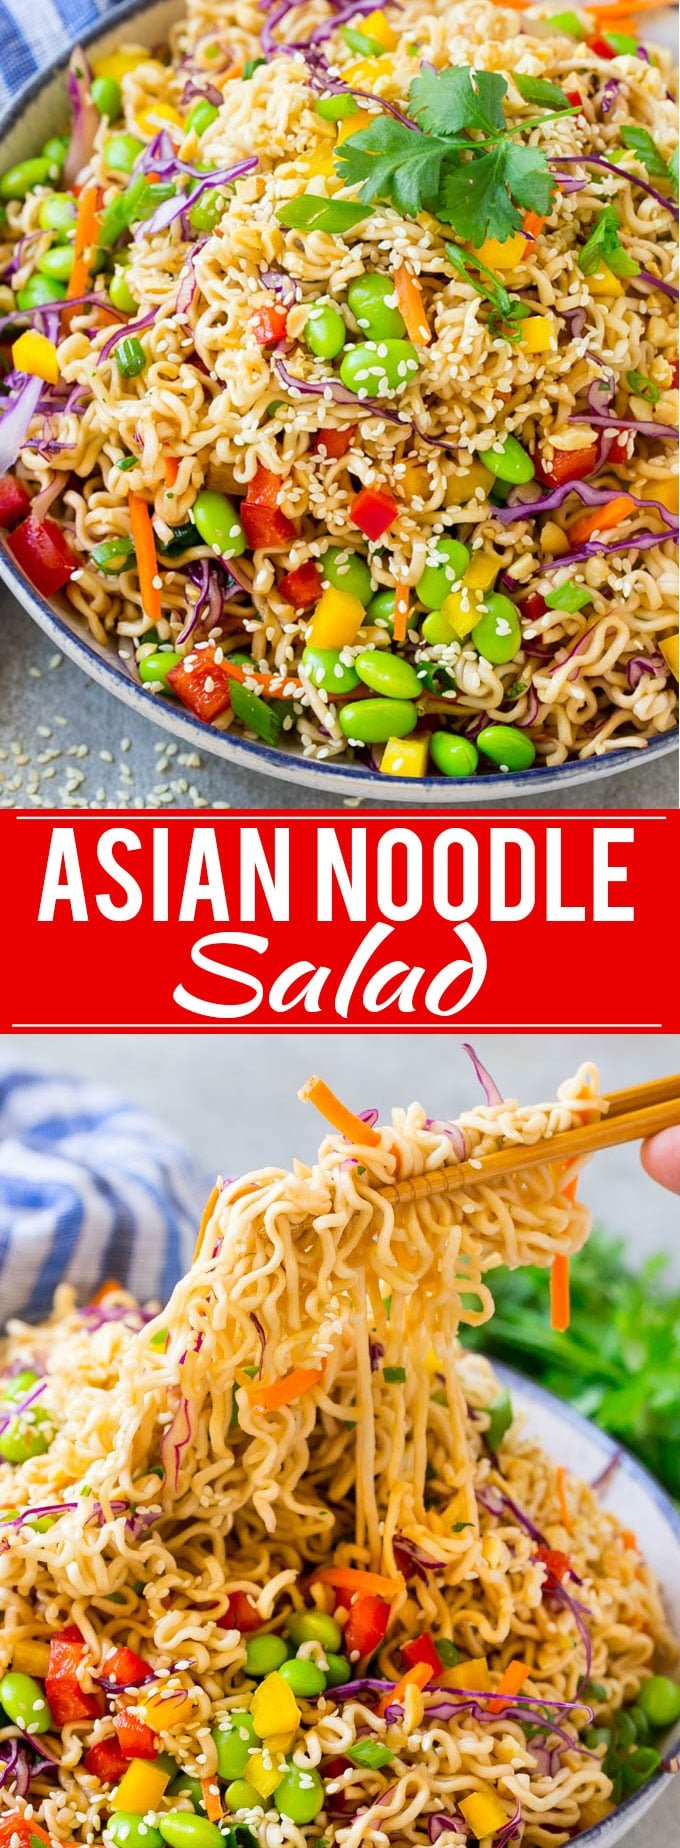 Asian Noodle Salad Recipe | Ramen Noodle Salad | Asian Salad #salad #noodles #edamame #vegetarian #dinneratthezoo #lunch